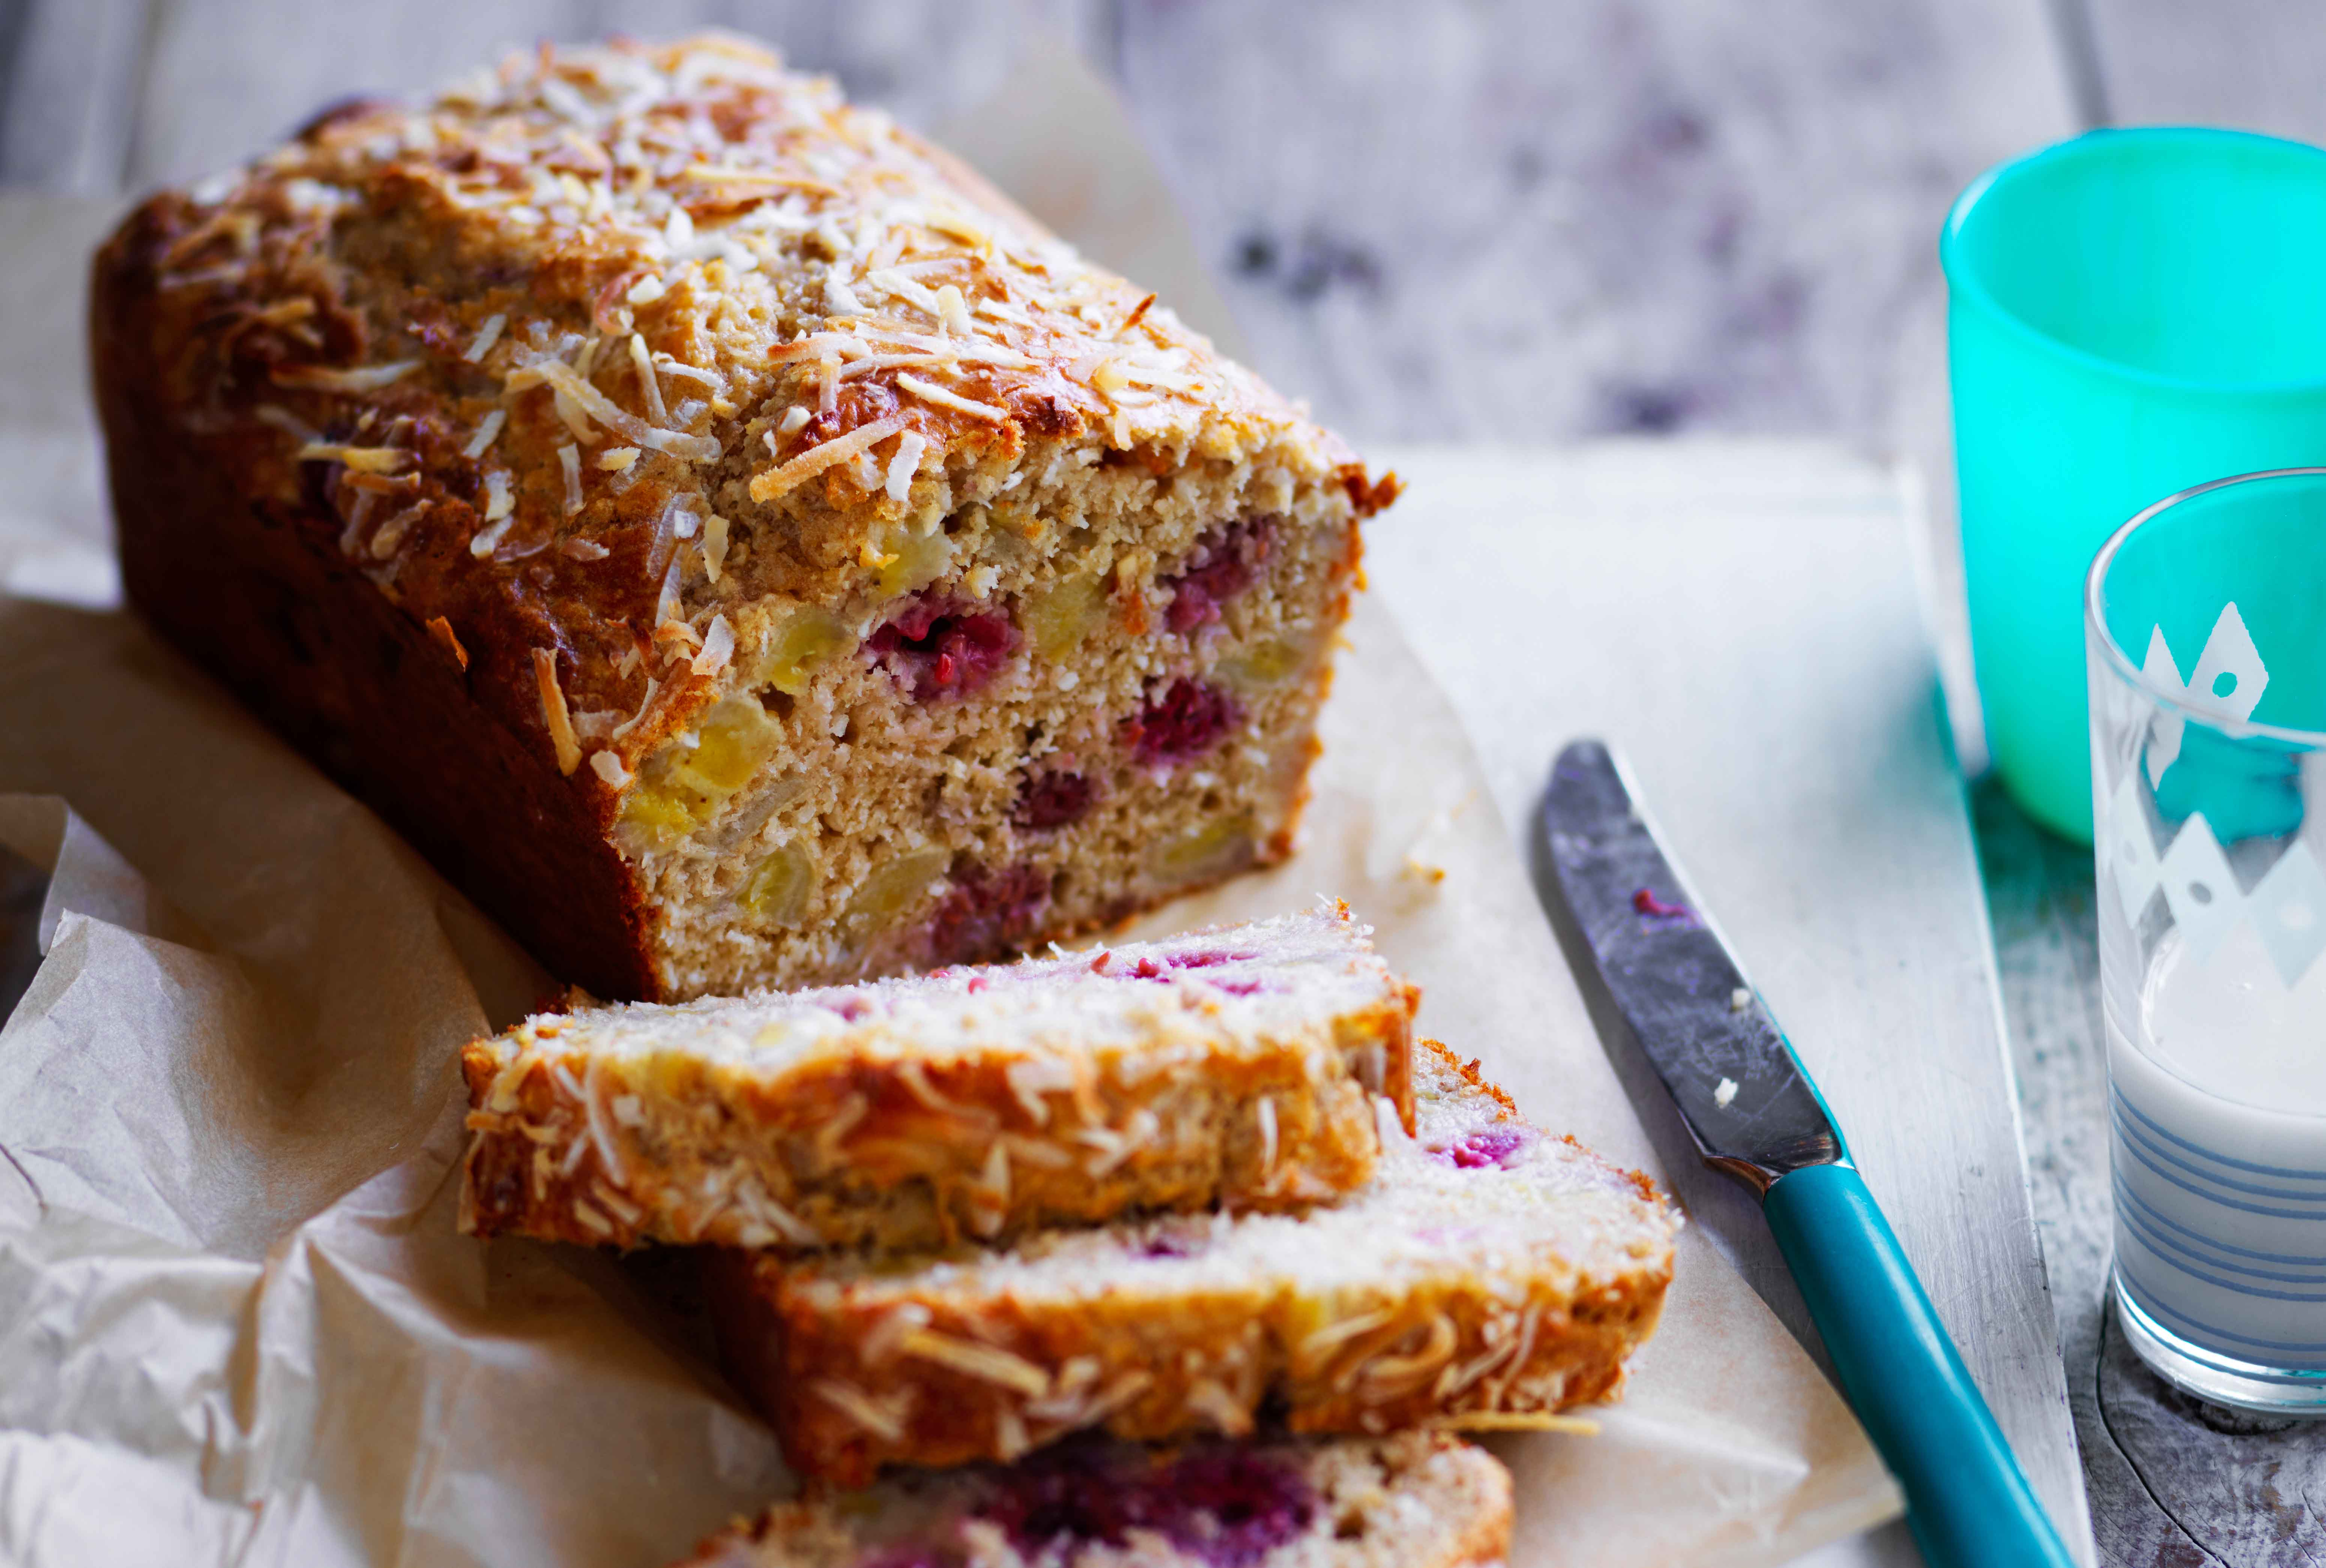 Banana and coconut bread with raspberries